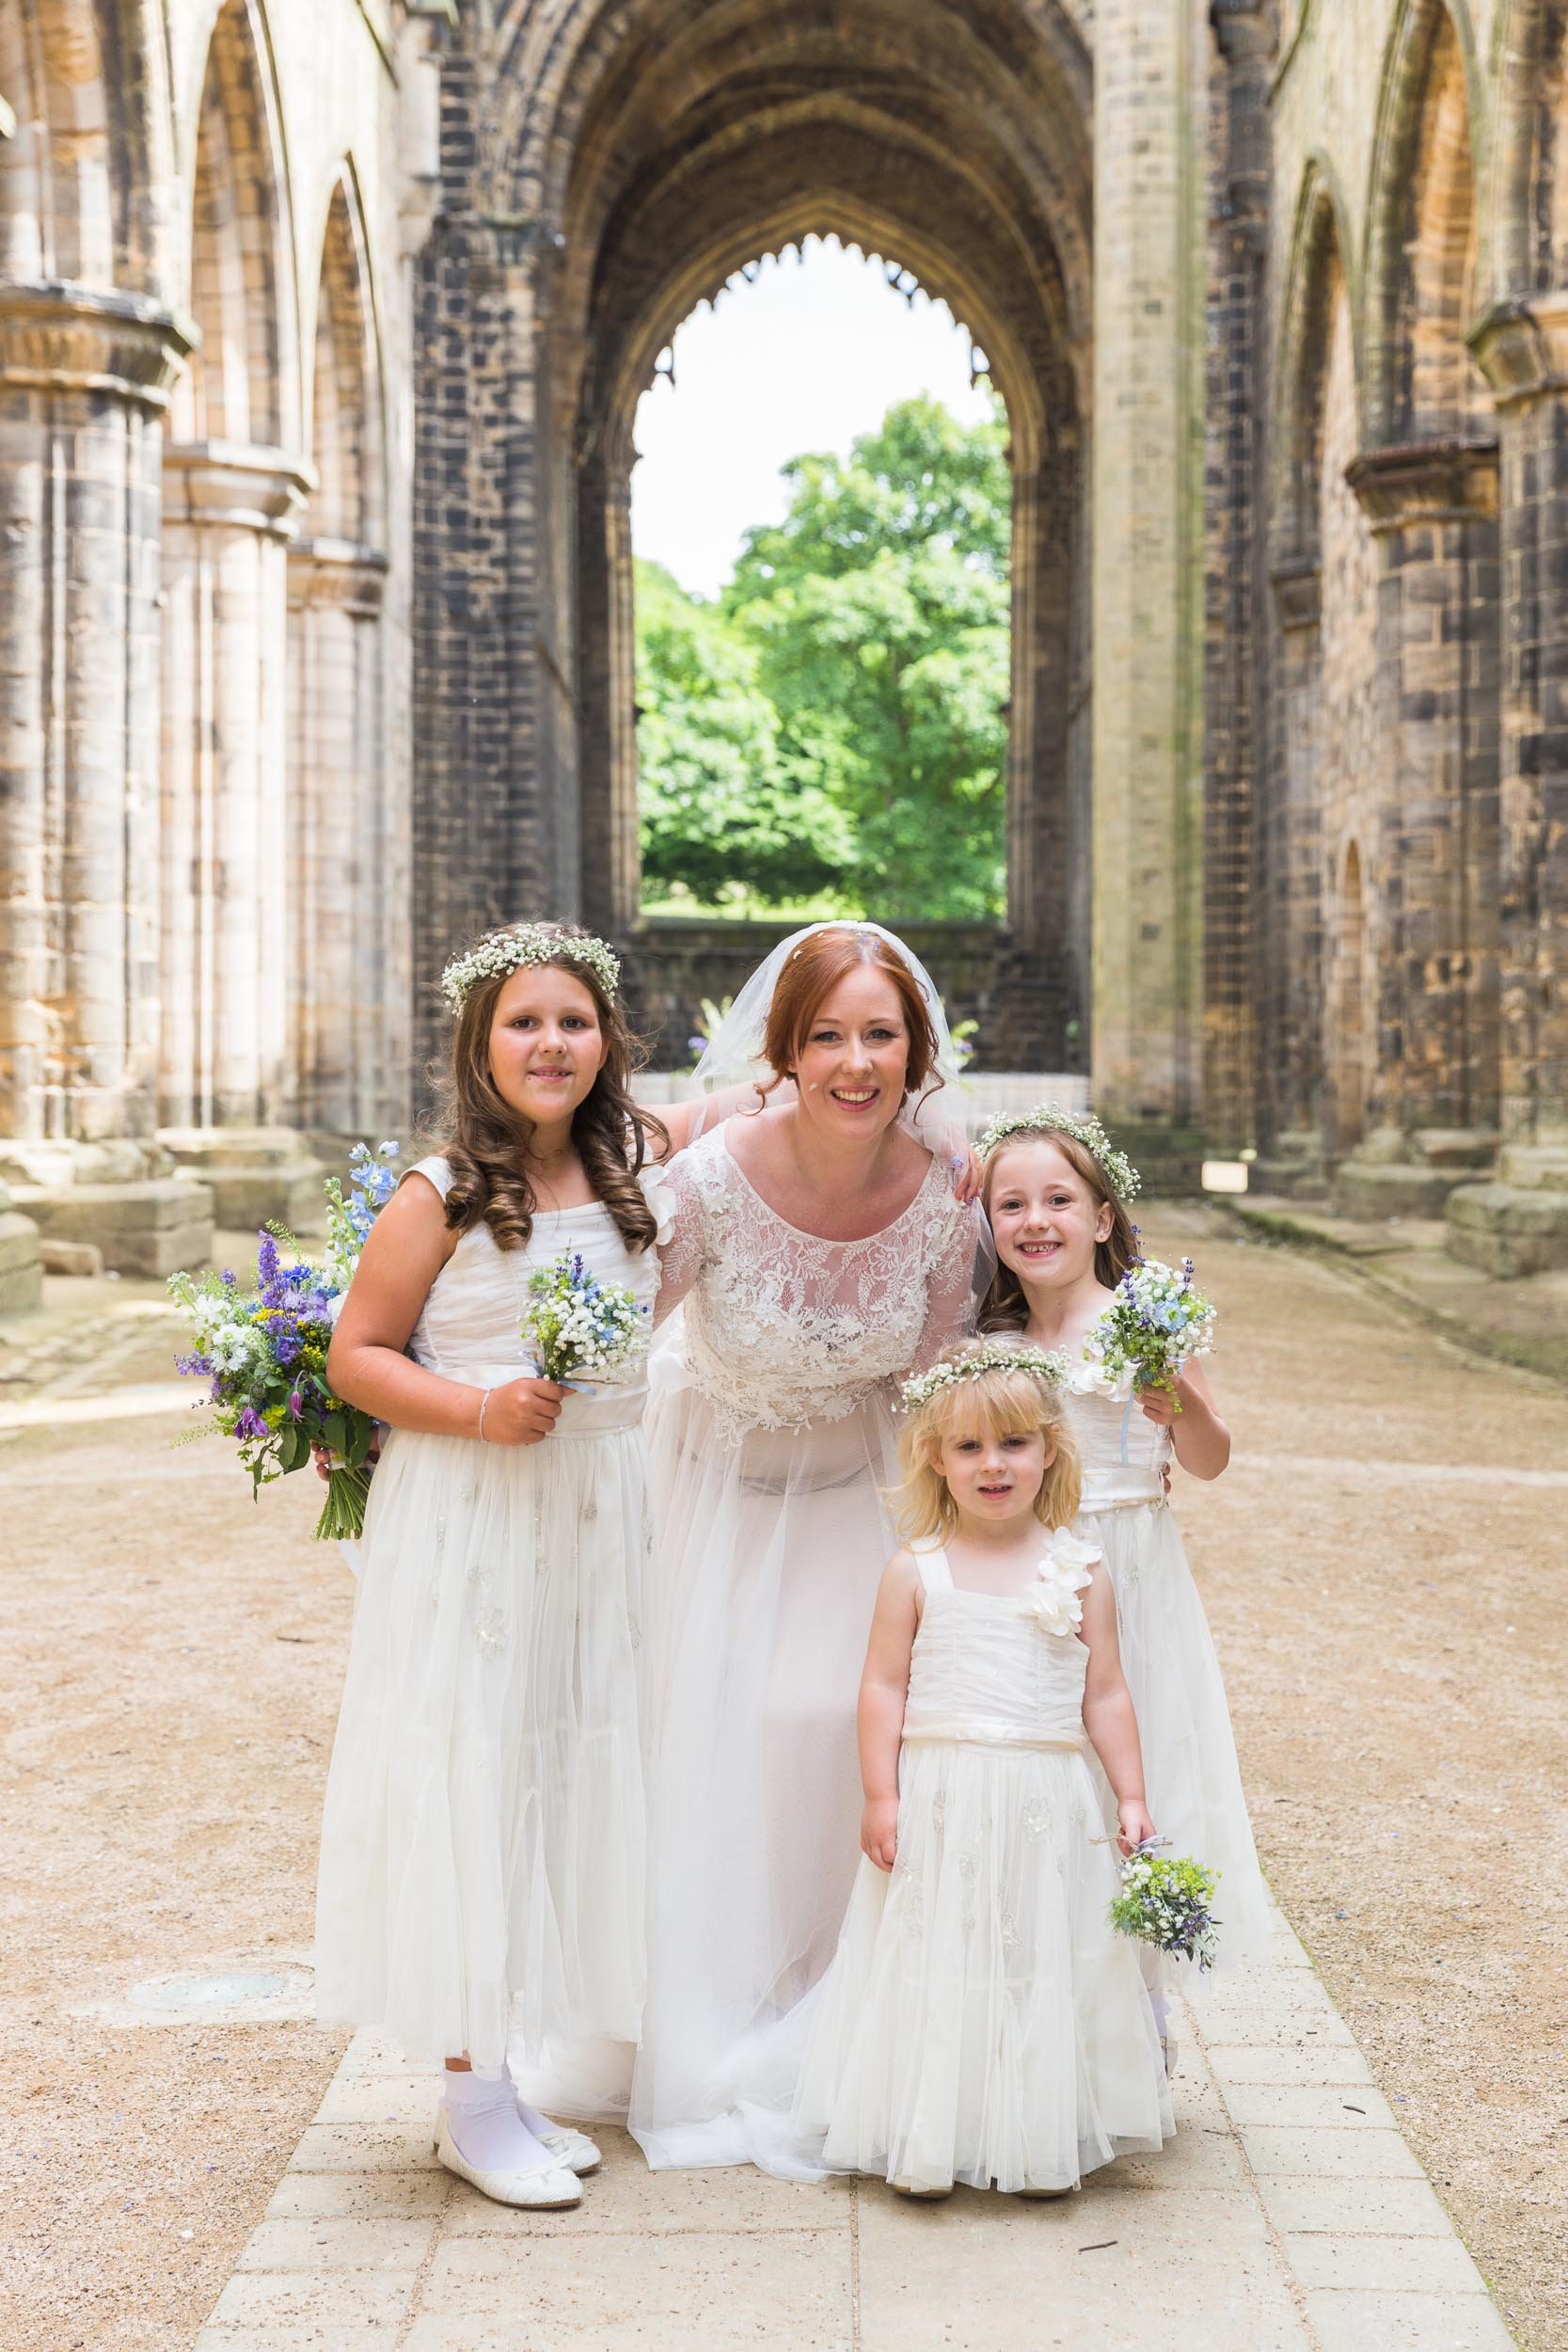 Amy & Oliver-Wedding Part II-Kirkstall Abbey-Leeds-photo-0283.jpg